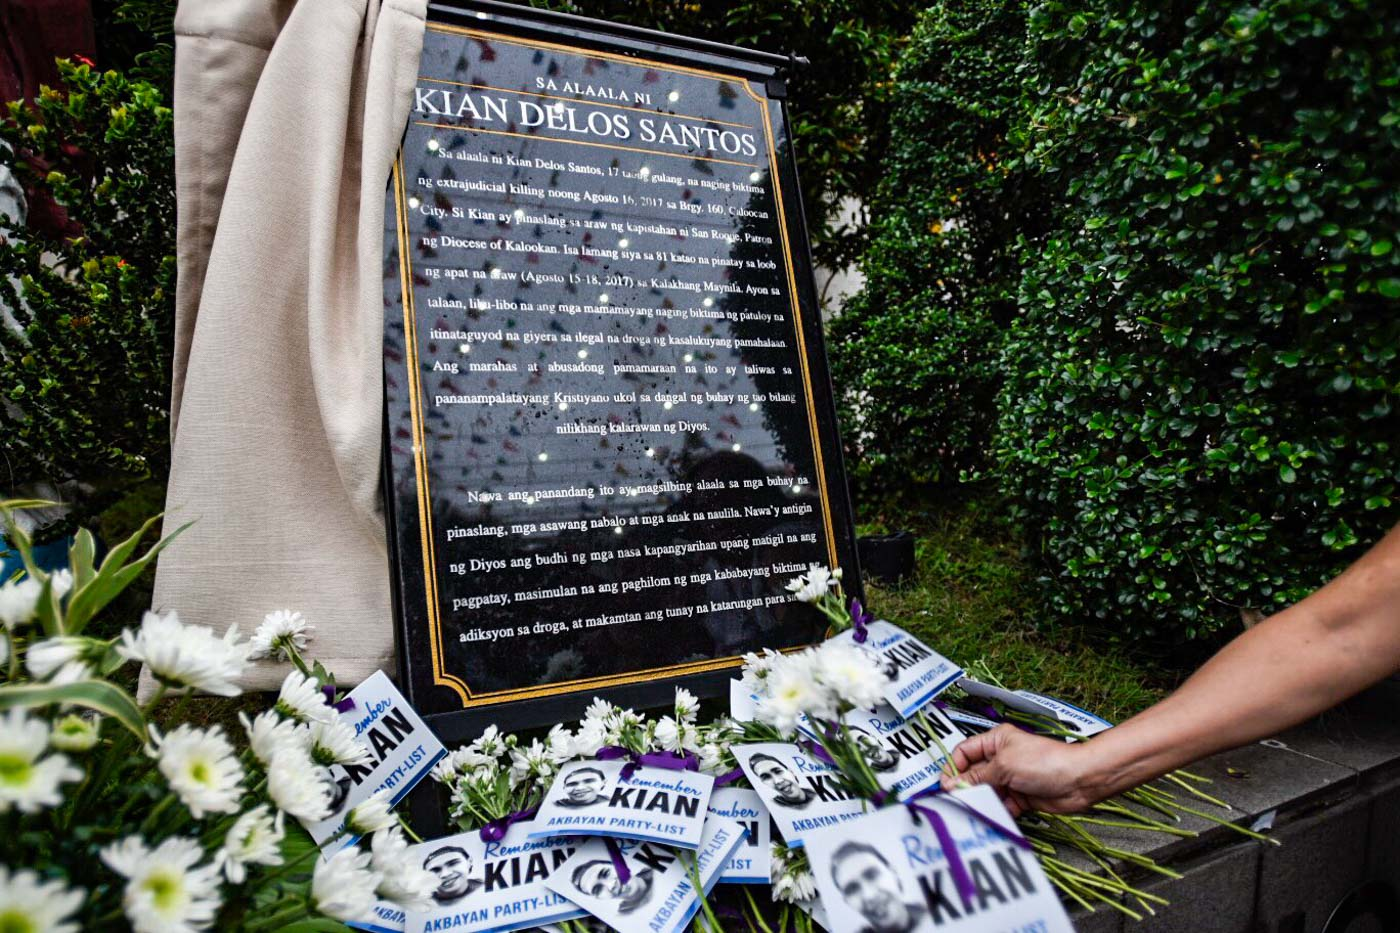 JUSTICE. A commemorative marker is unveiled on the death anniversary of Kian delos Santos. Photo by Maria Tan/Rappler